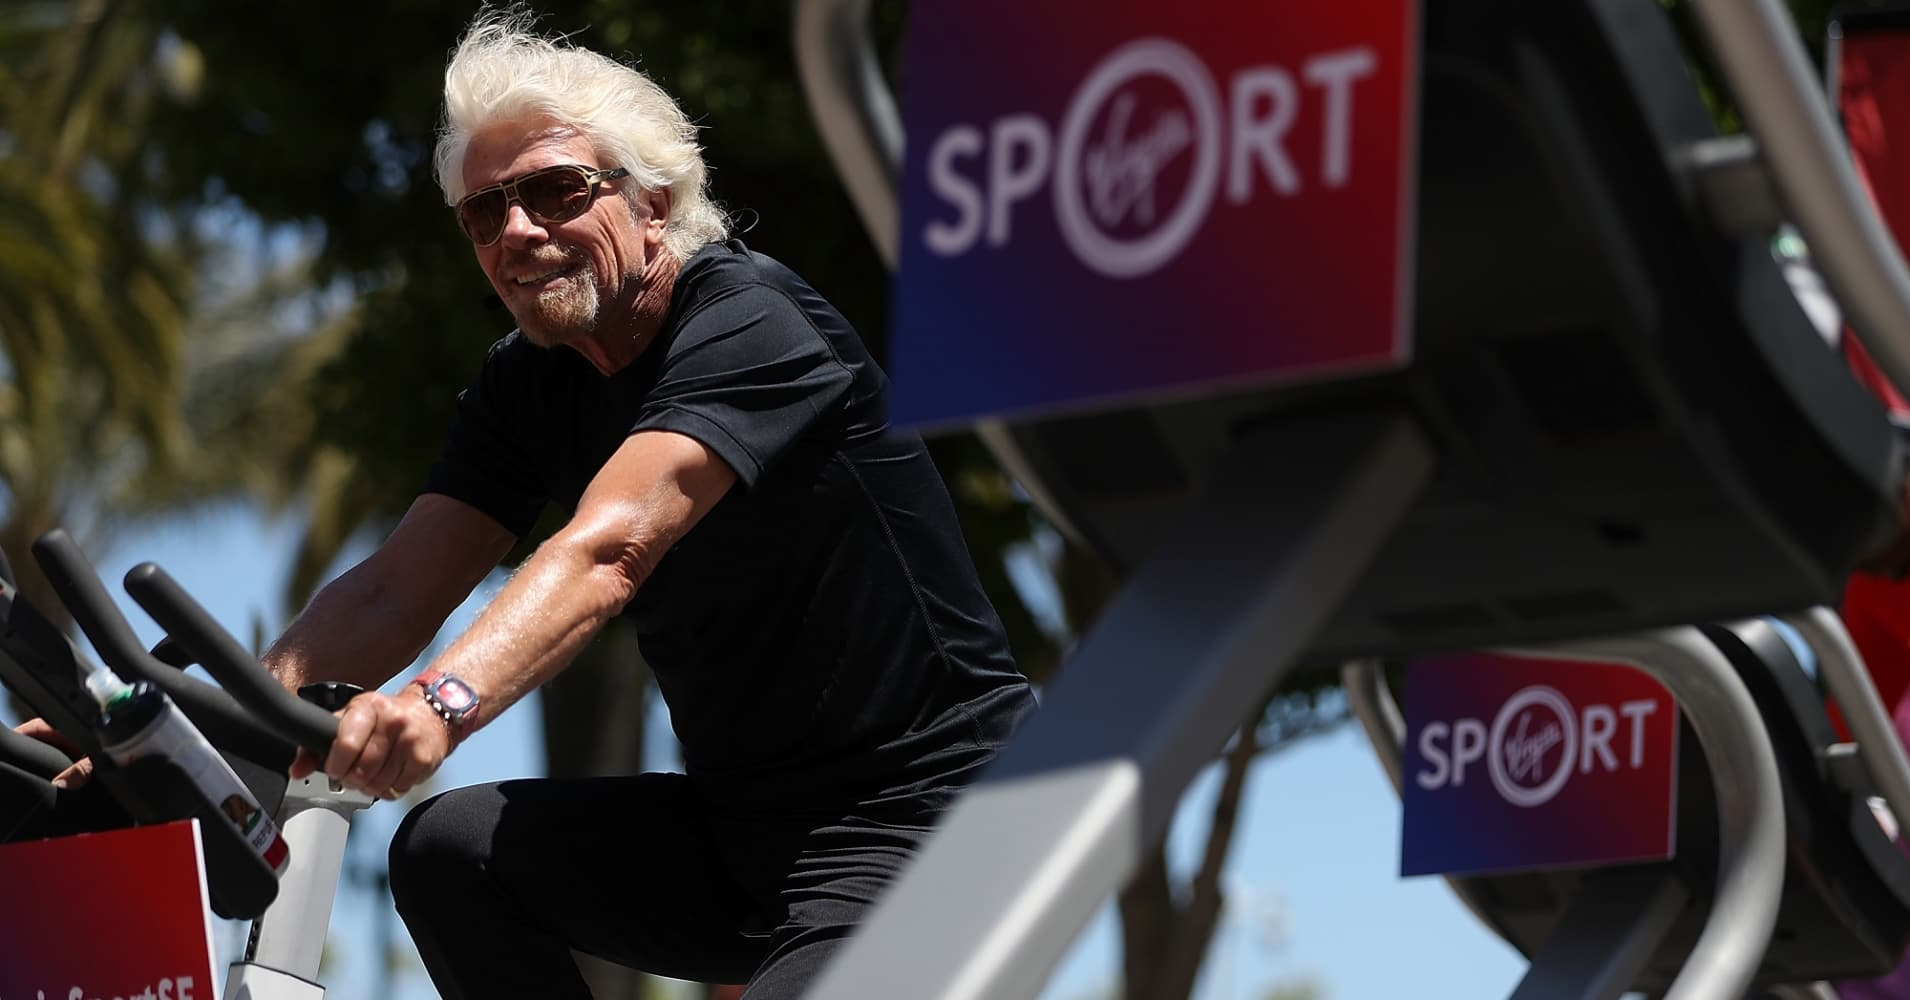 Sir Richard Branson rides an exercise bike during a news conference to announce the launch of Virgin Sport on May 18, 2017 in San Francisco, California.